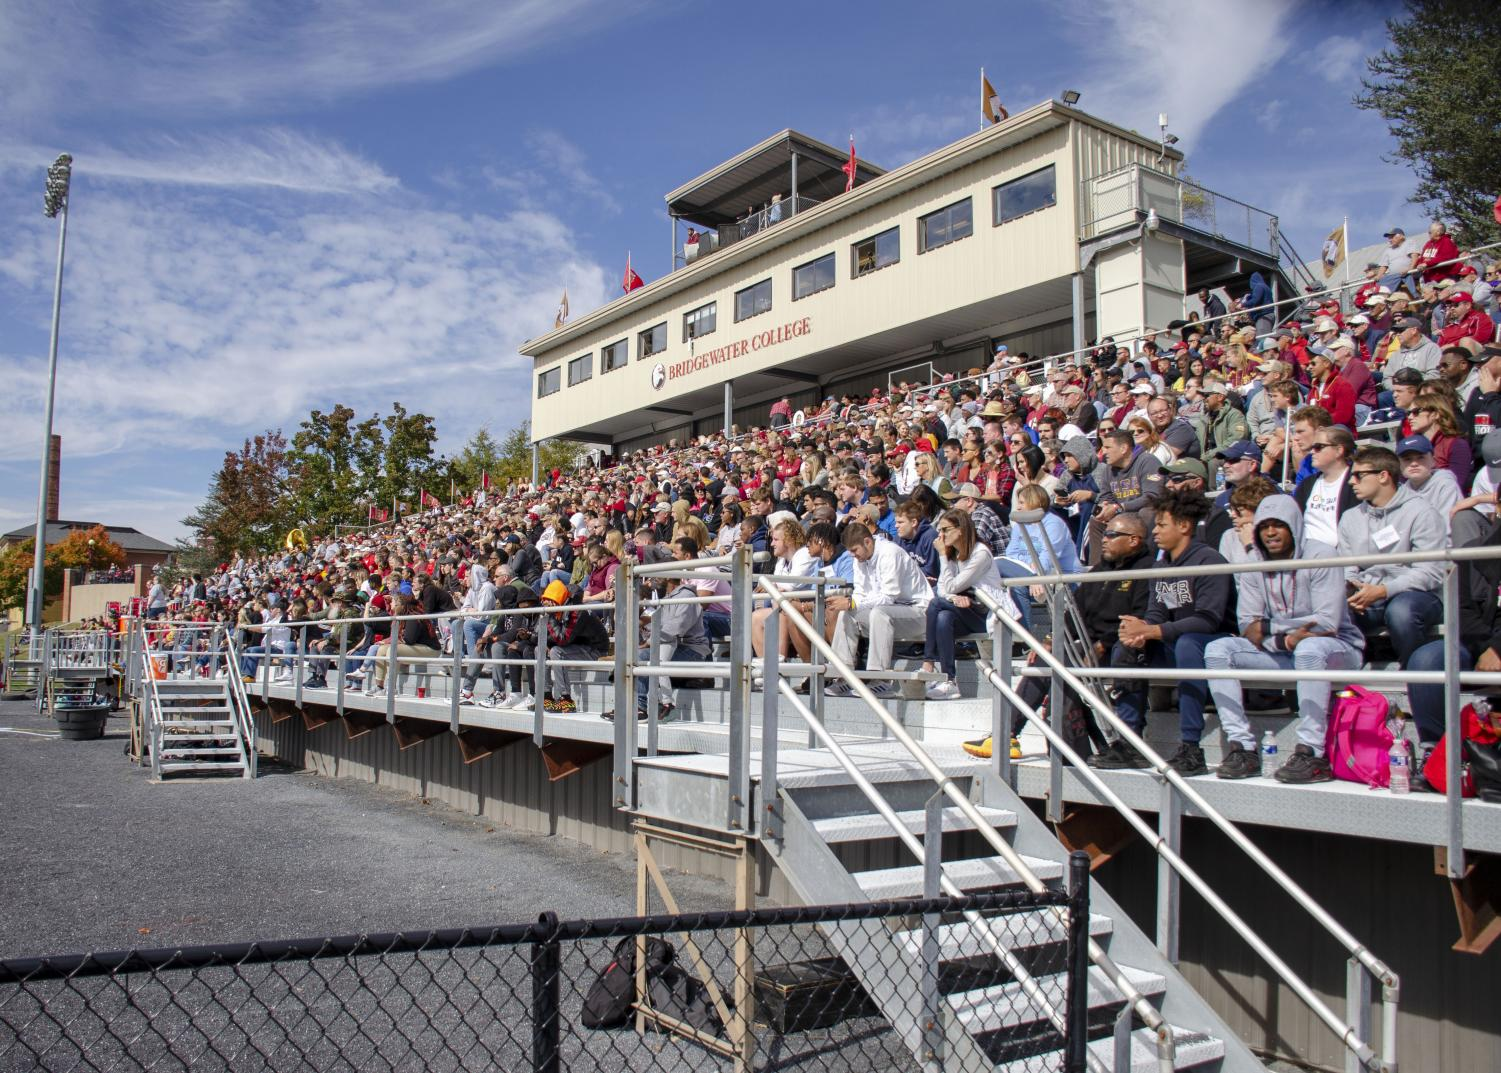 The+stands+were+packed+as+spectators+watched+the+Eagles+dominate+Ferrum+in+the+second+half.